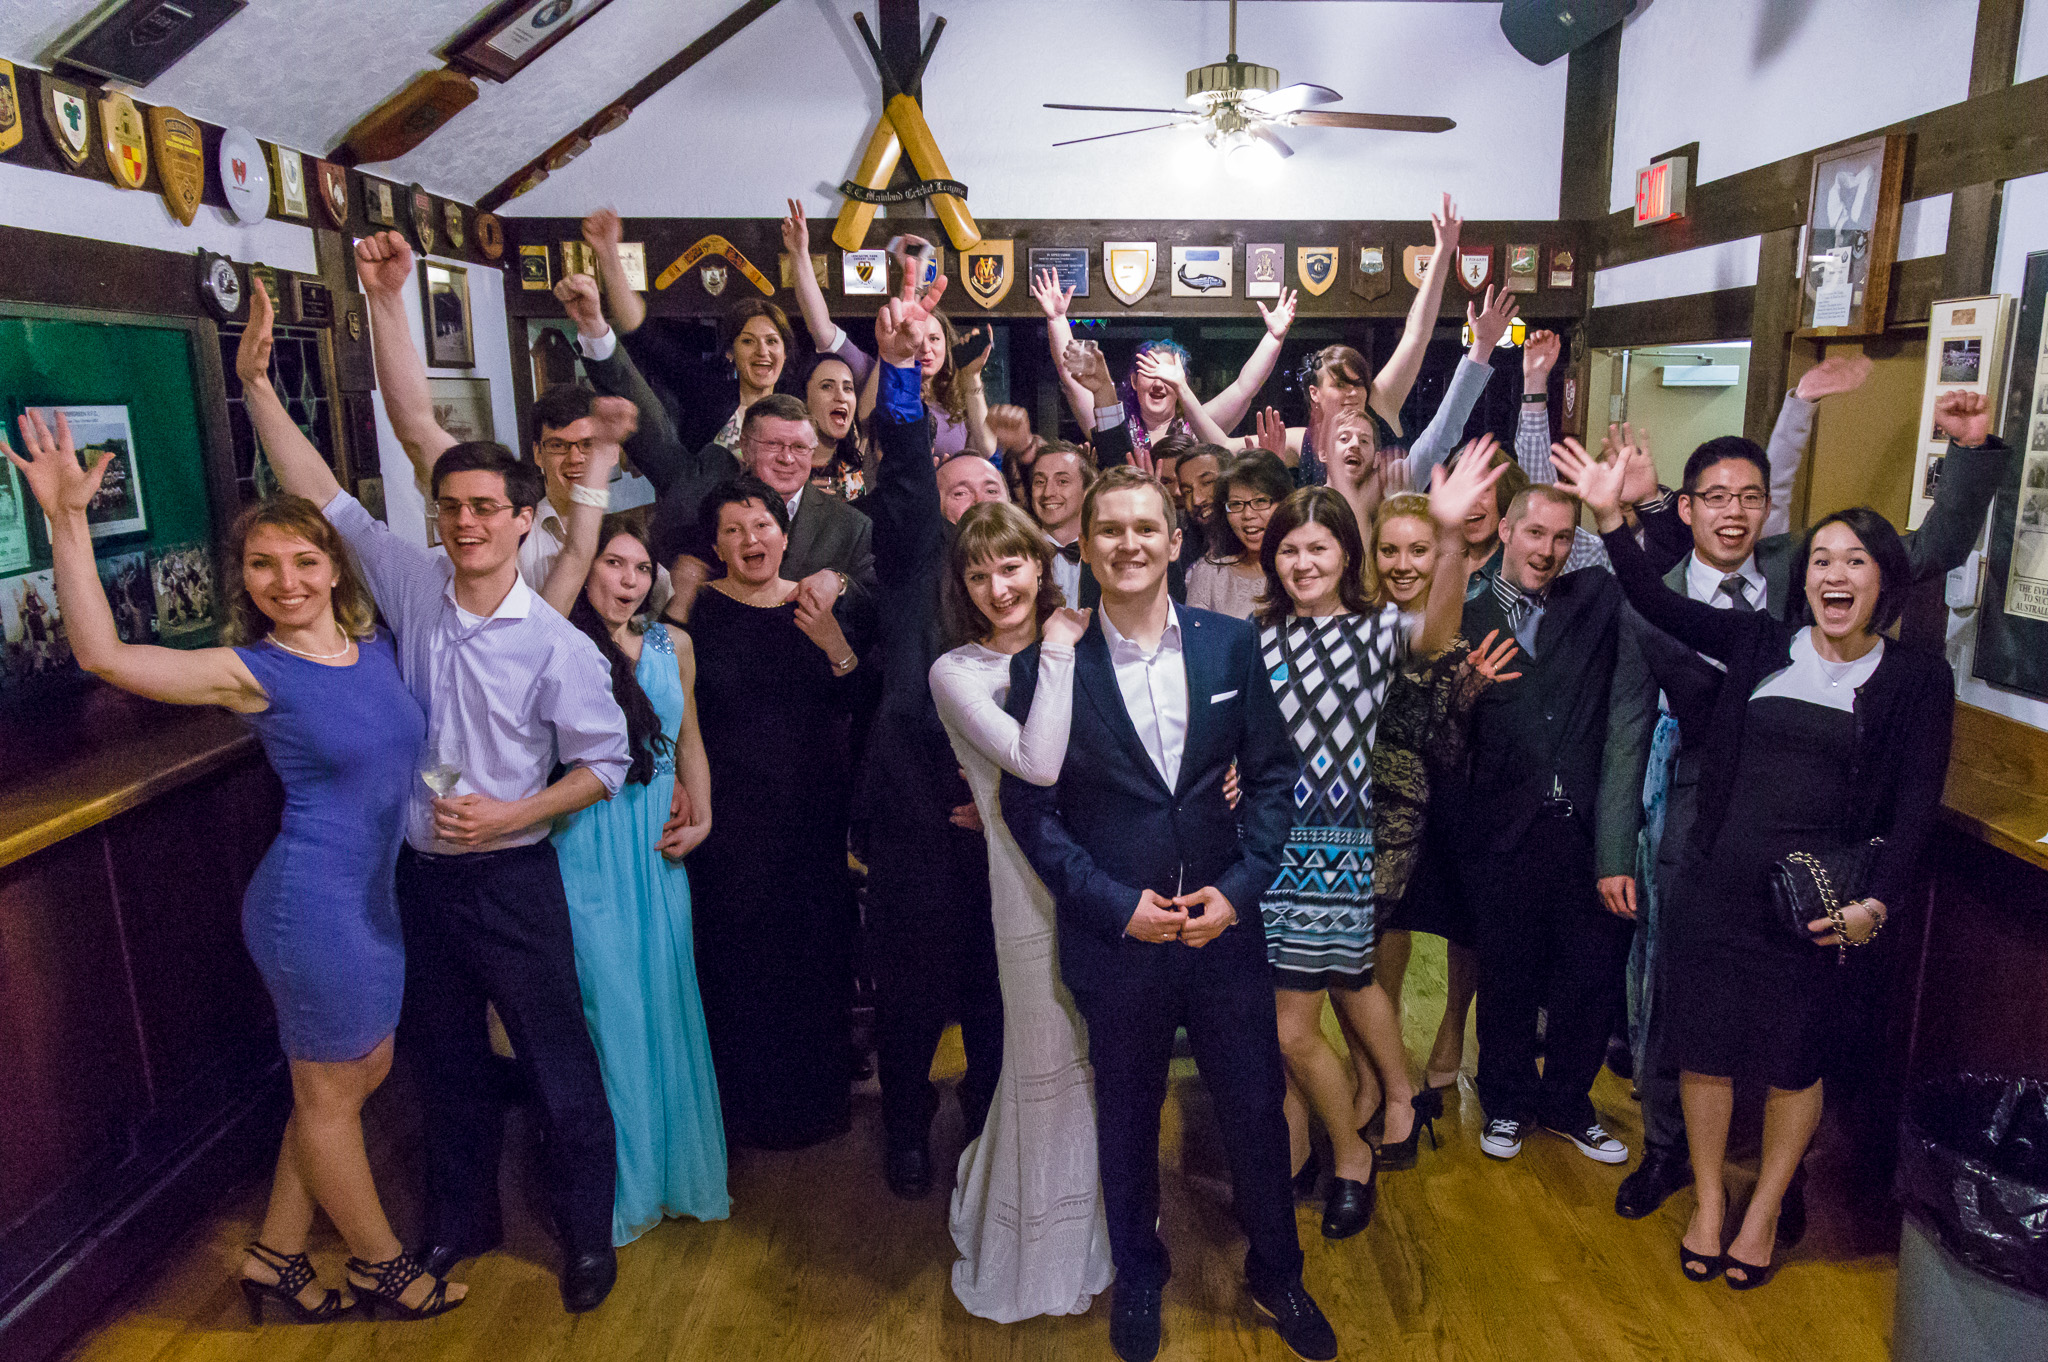 Denis Smirnov and Irina Smirnova's Wedding - 4/11/2015 - Photography by Bailward Weddings